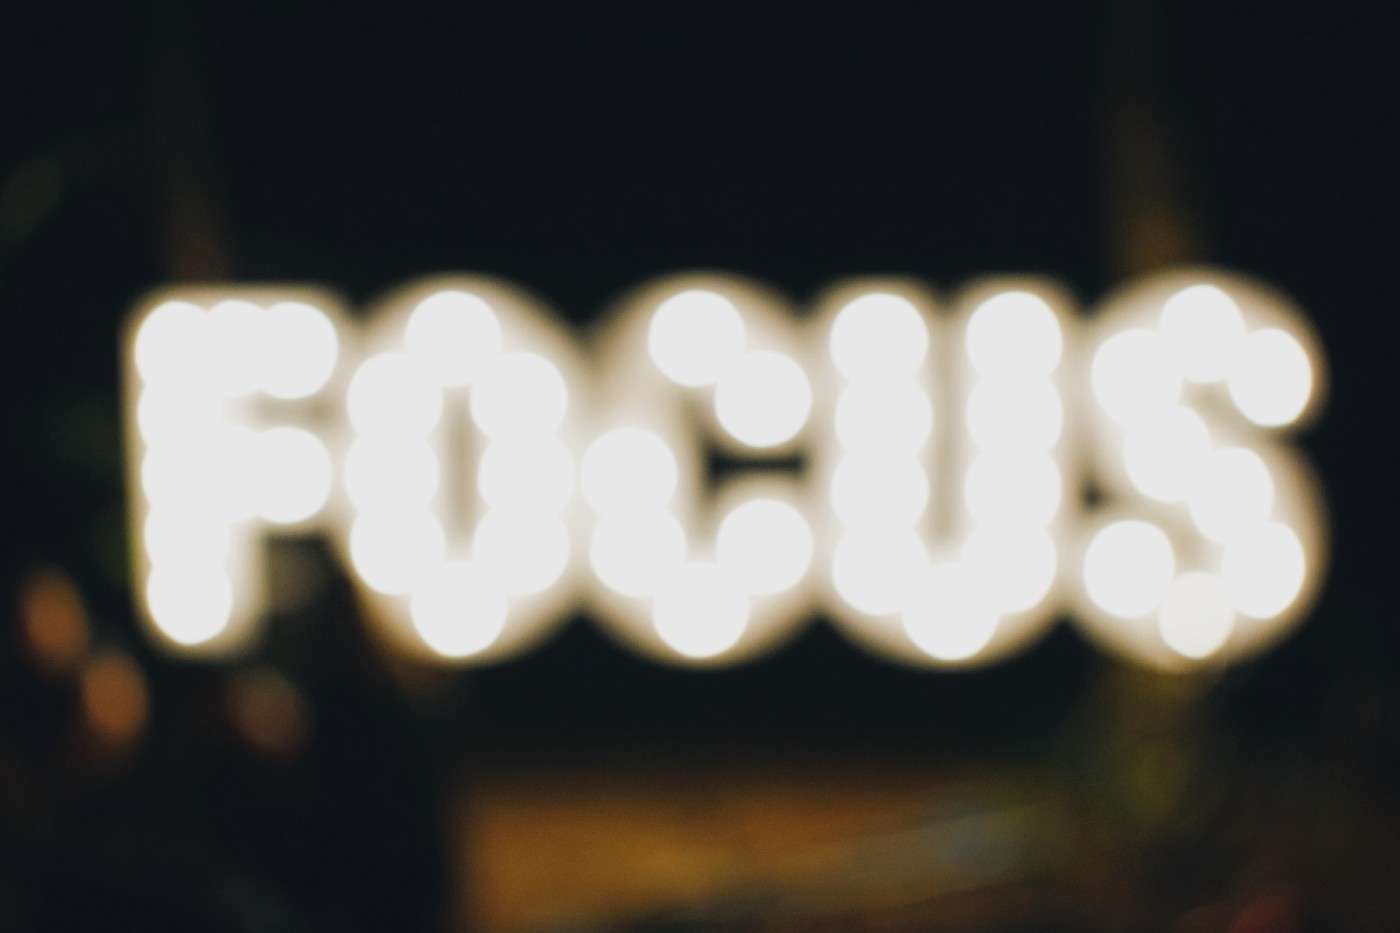 Head picture of the article. Shows the word 'FOCUS' made of lightbulbs, and blurred on a black background.